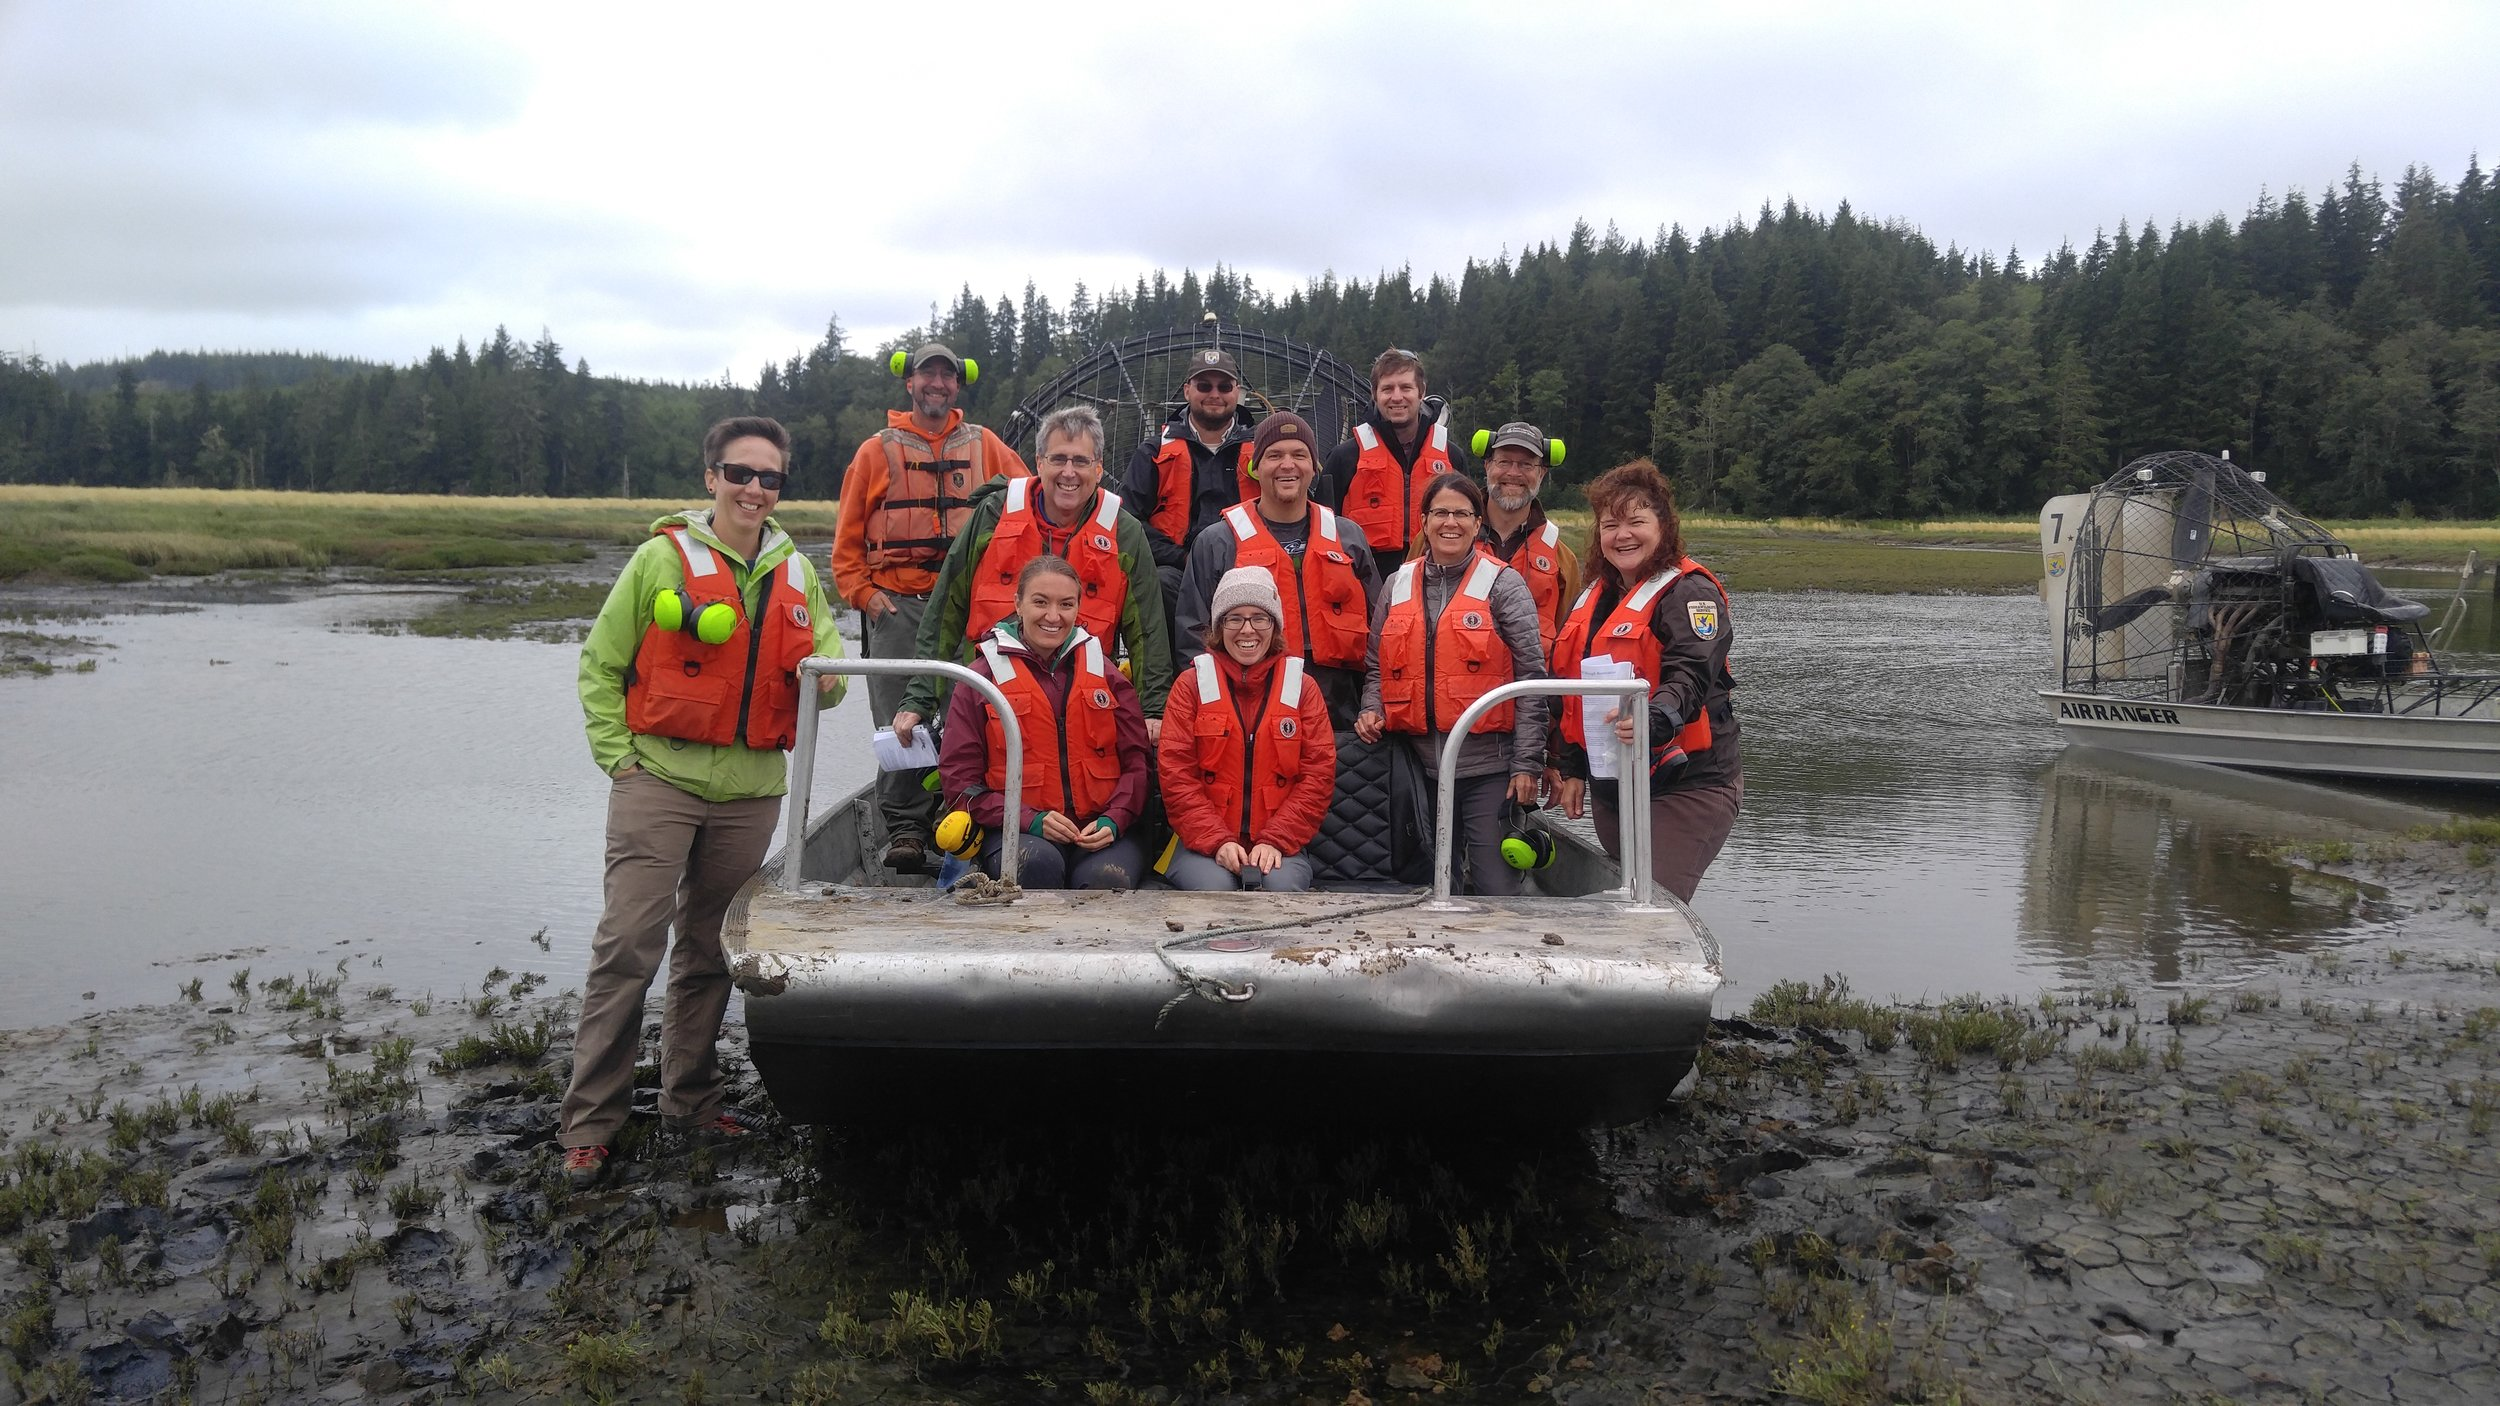 Tour participants got to experience the incredible restoration of Willapa Bay in the best way – on air boats.  Ear protection was essential! Photo © Jessica Helsley